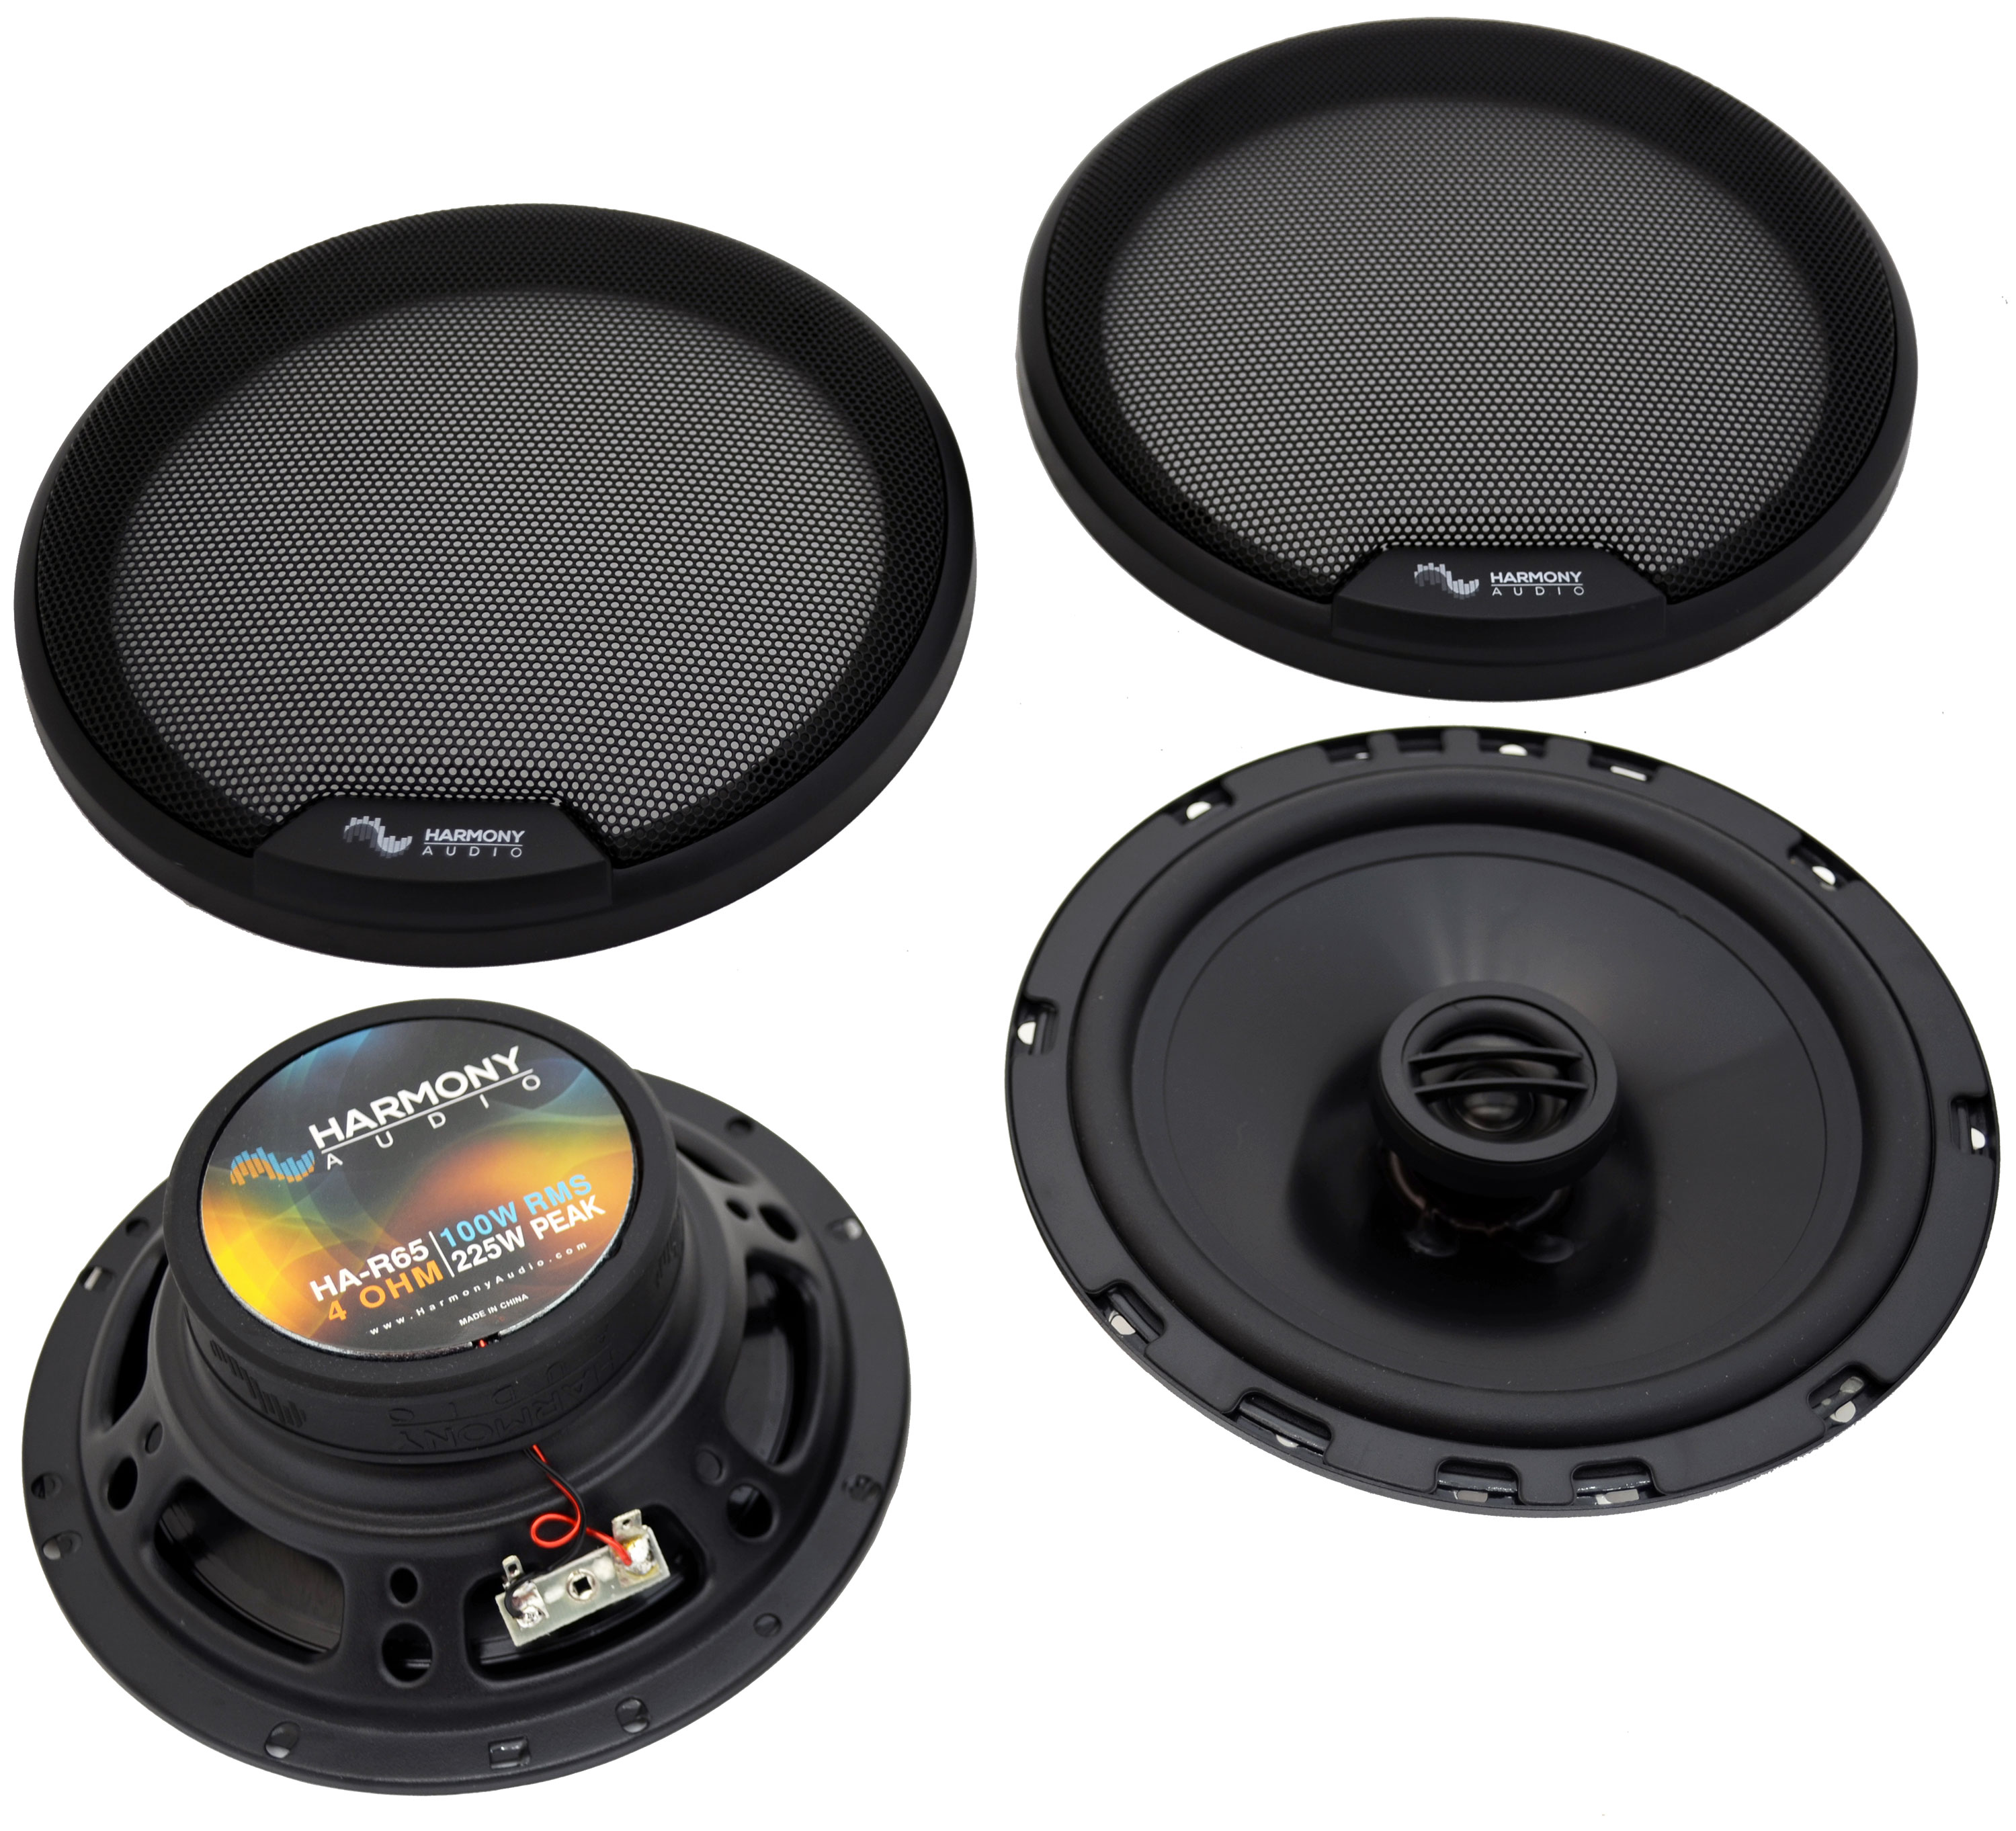 Fits BMW M3 2007-2013 Rear Deck Replacement Speaker Harmony HA-R65 Speakers New